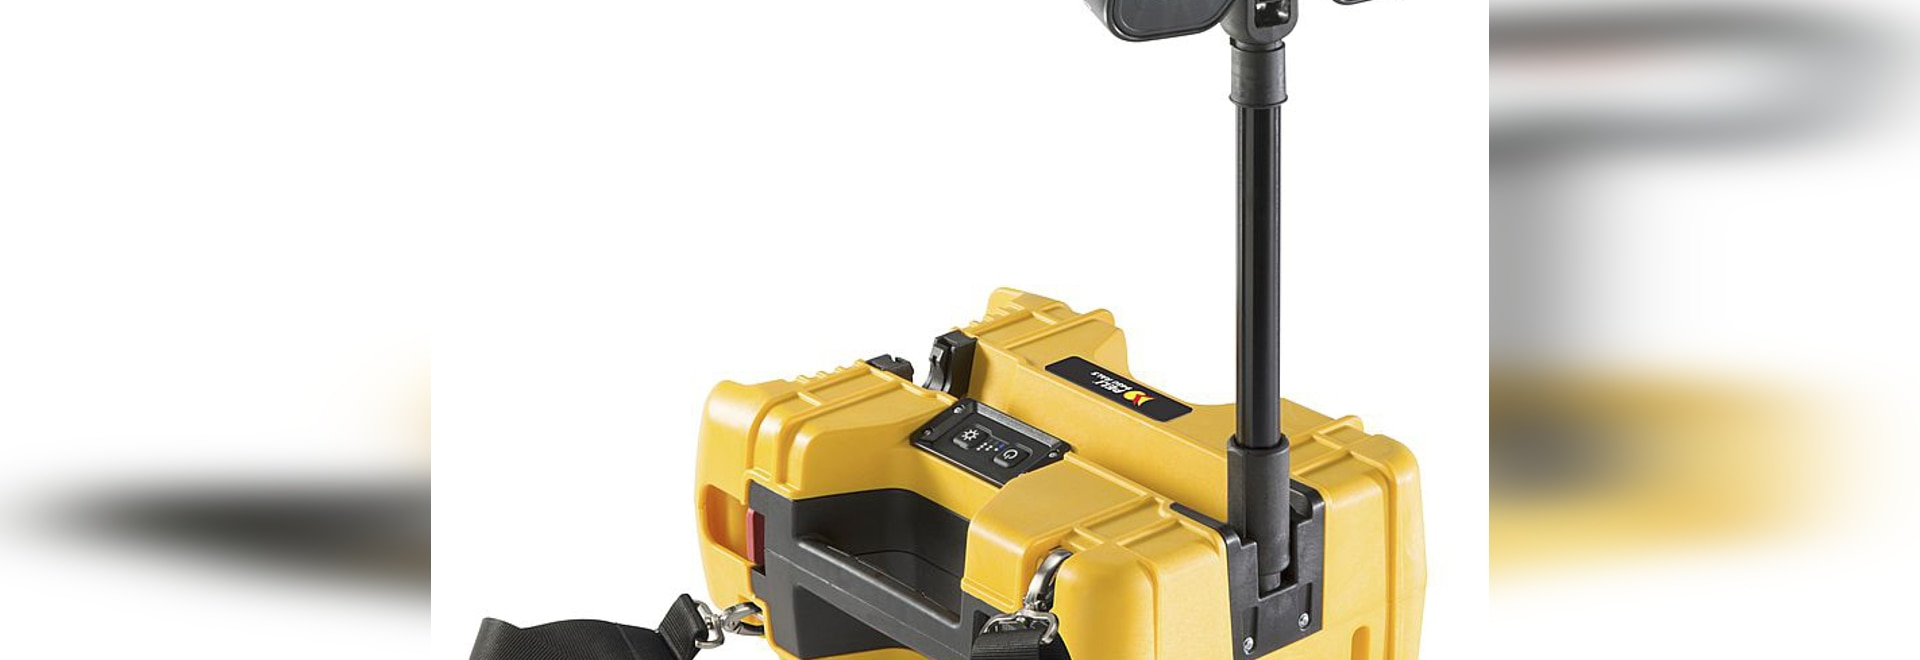 Peli´s Advanced Area Lighting Group introduces the 9480 Remote Area Lighting System (RALS)